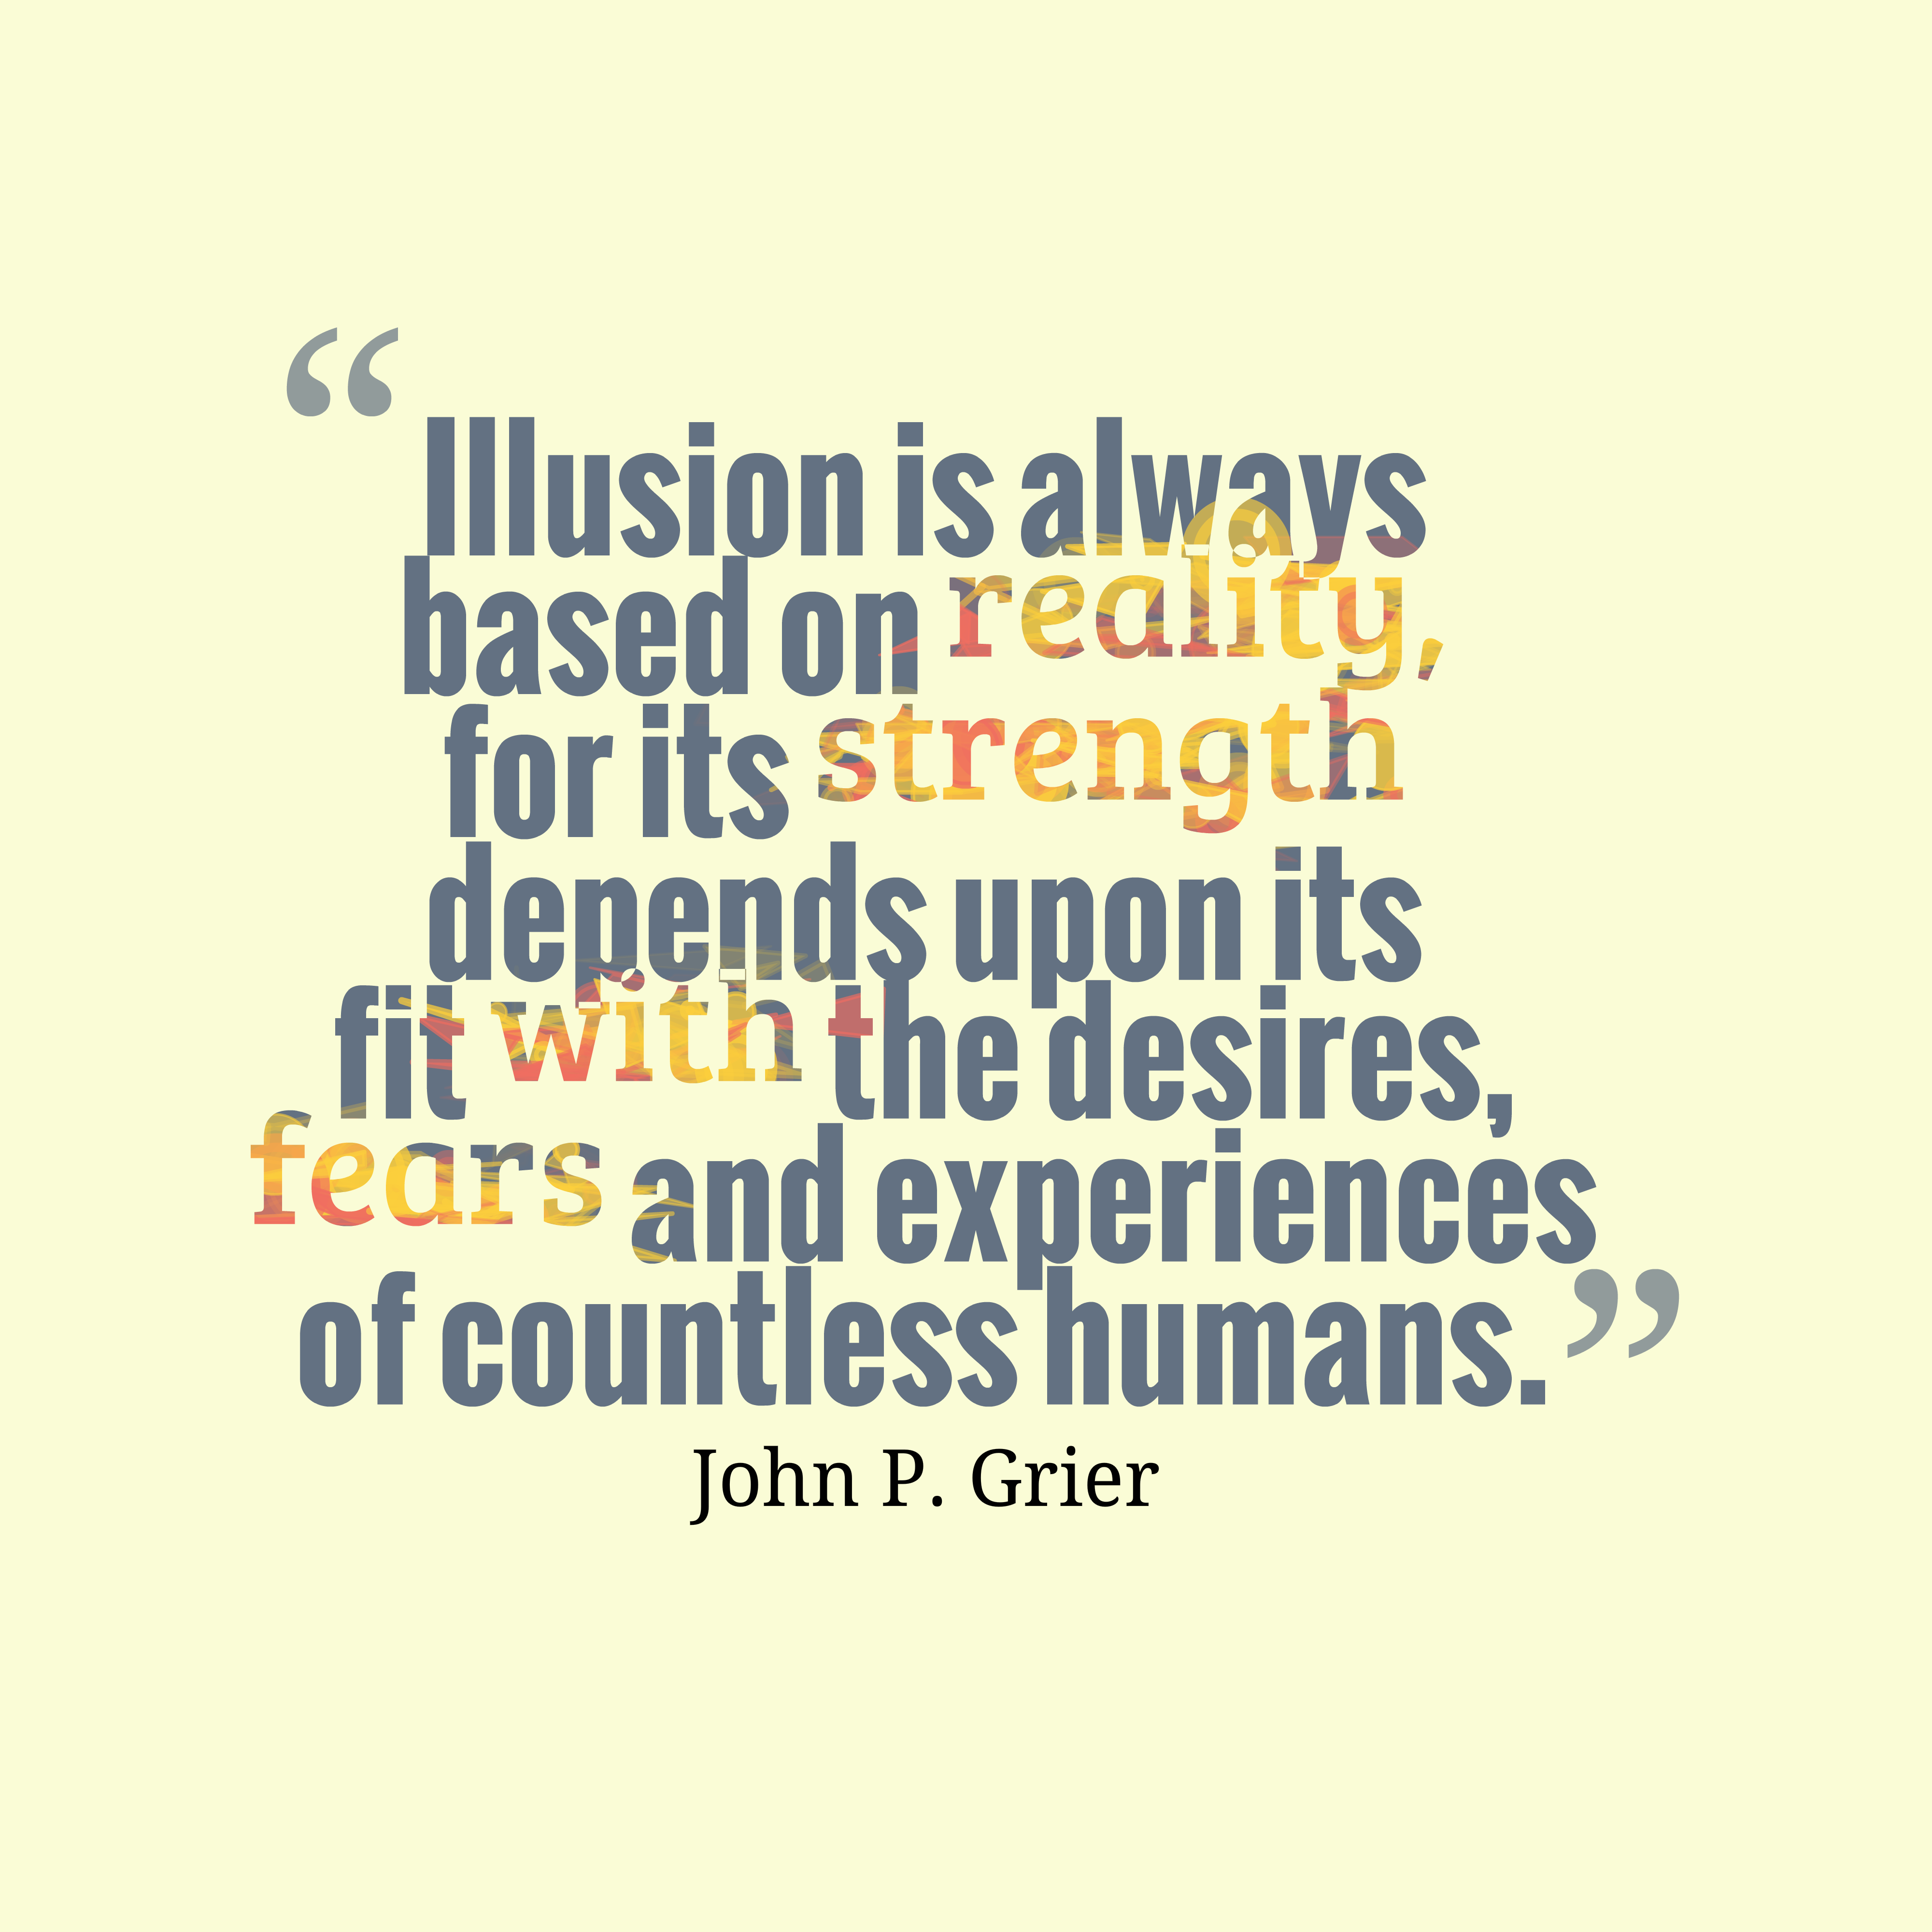 John P Grier Quote About Illusion